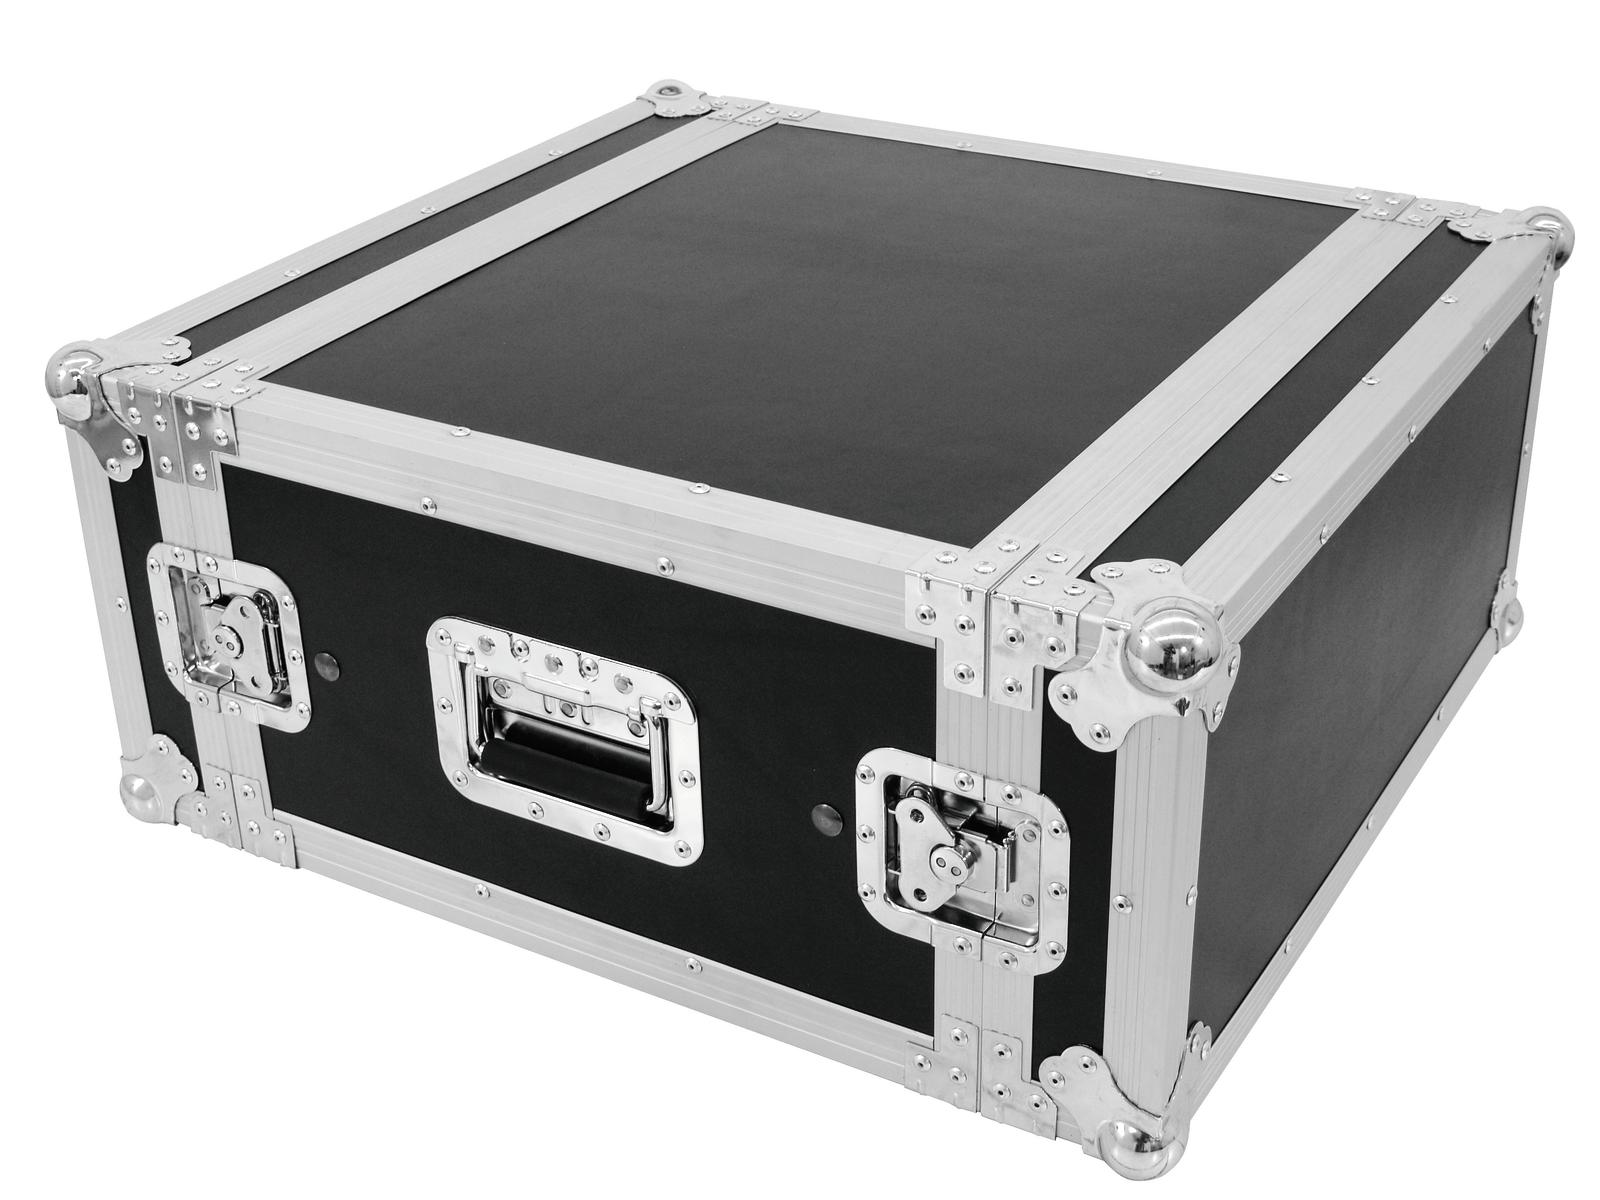 CASE RACK PER AMPLIFICATORI ANTIURTO OMNITRONIC SP-2 4U